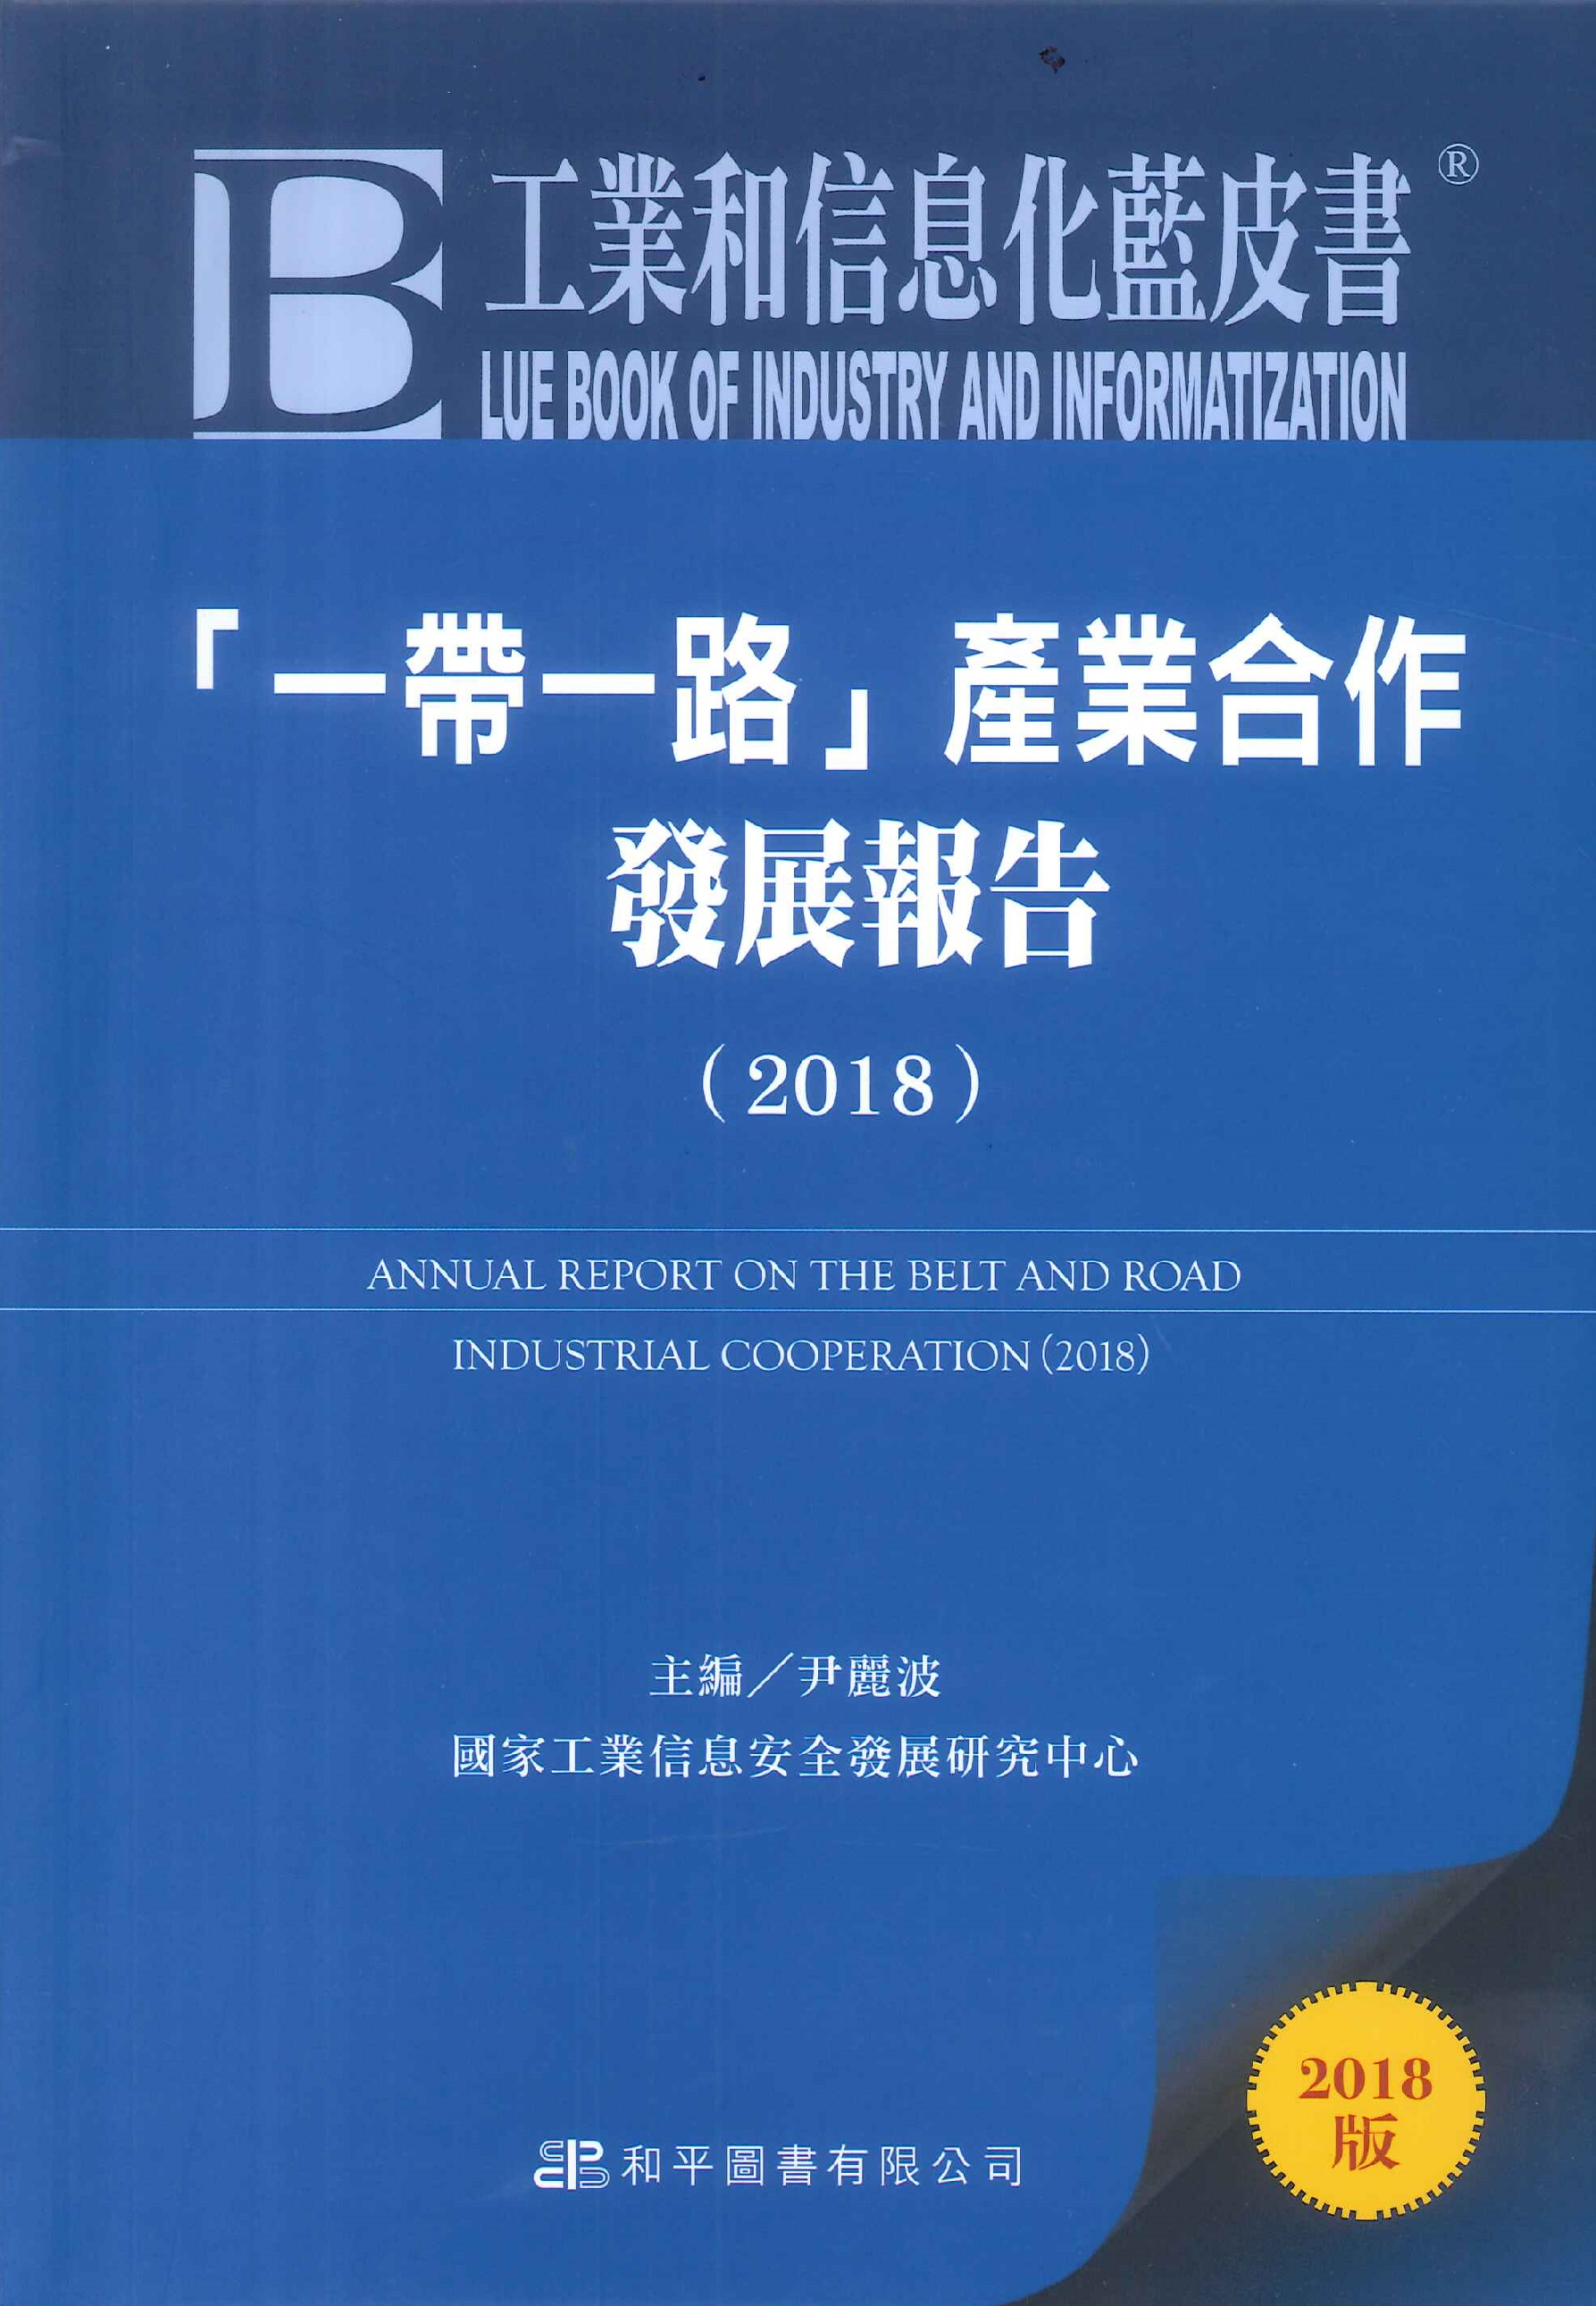 「一帶一路」產業合作發展報告.2018=Annual report on the belt and road industrial cooperation